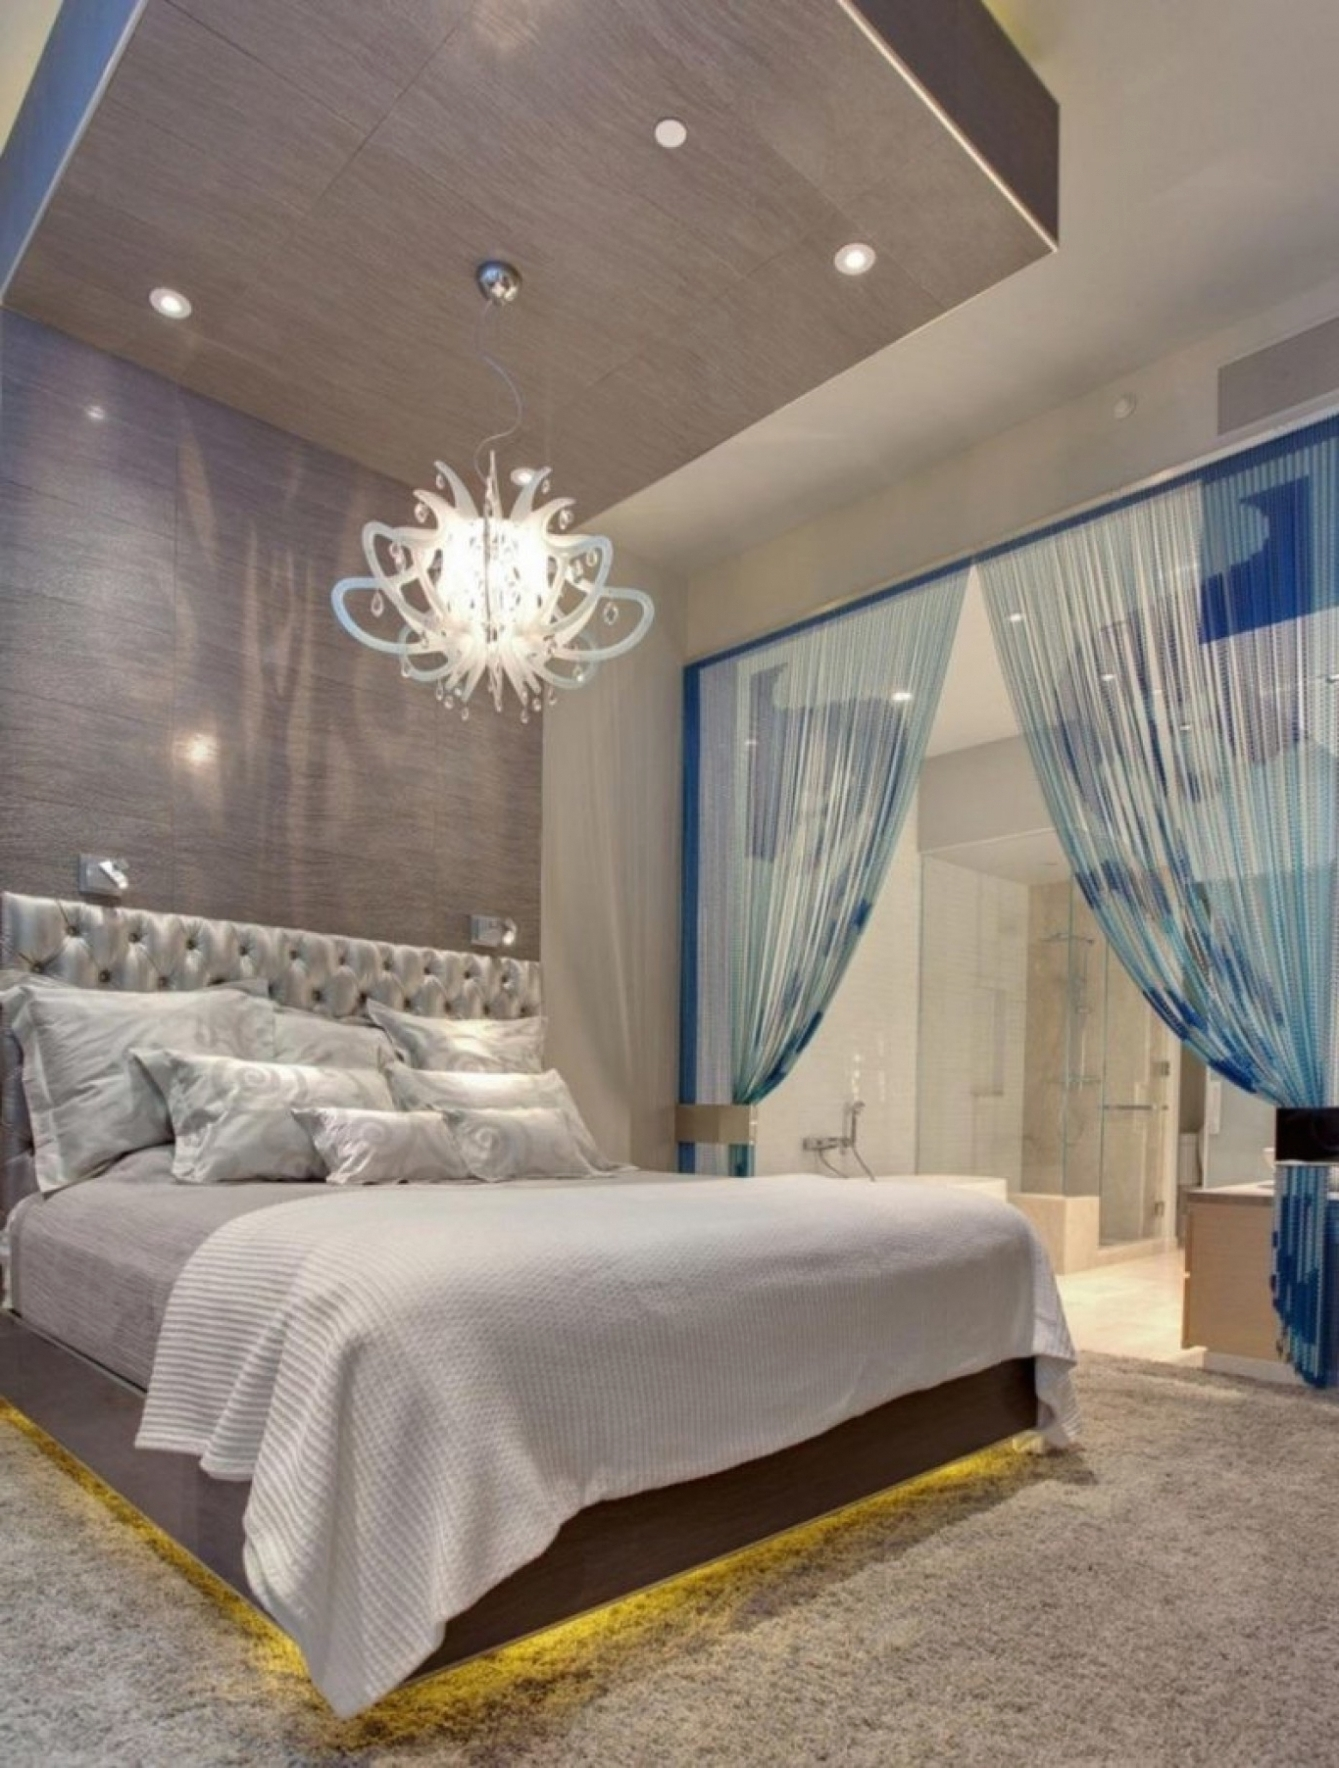 Current Chandeliers In The Bedroom For Home Decor: Photos Of Chandeliers In Bedrooms Chandelier Size For (View 10 of 15)